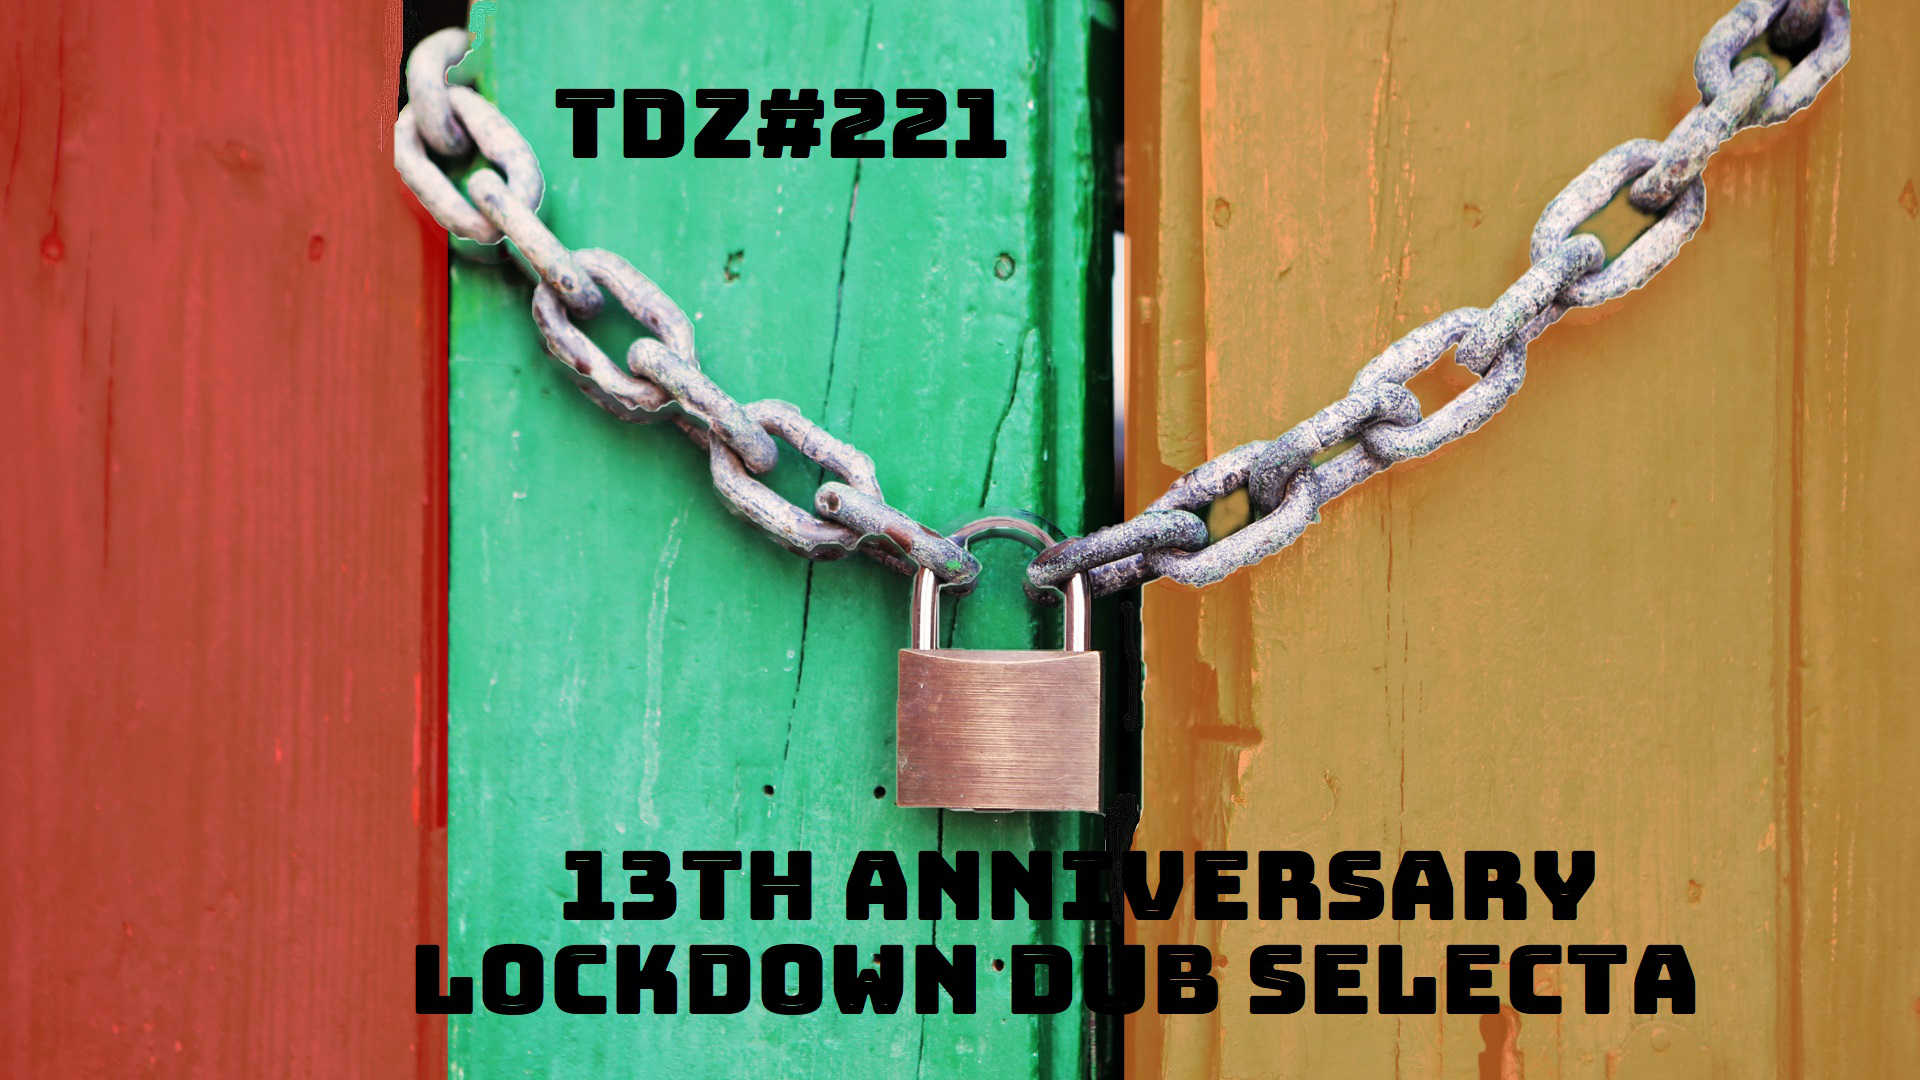 TDZ#221... 13th Anniversary Lockdown Dub Selecta.....